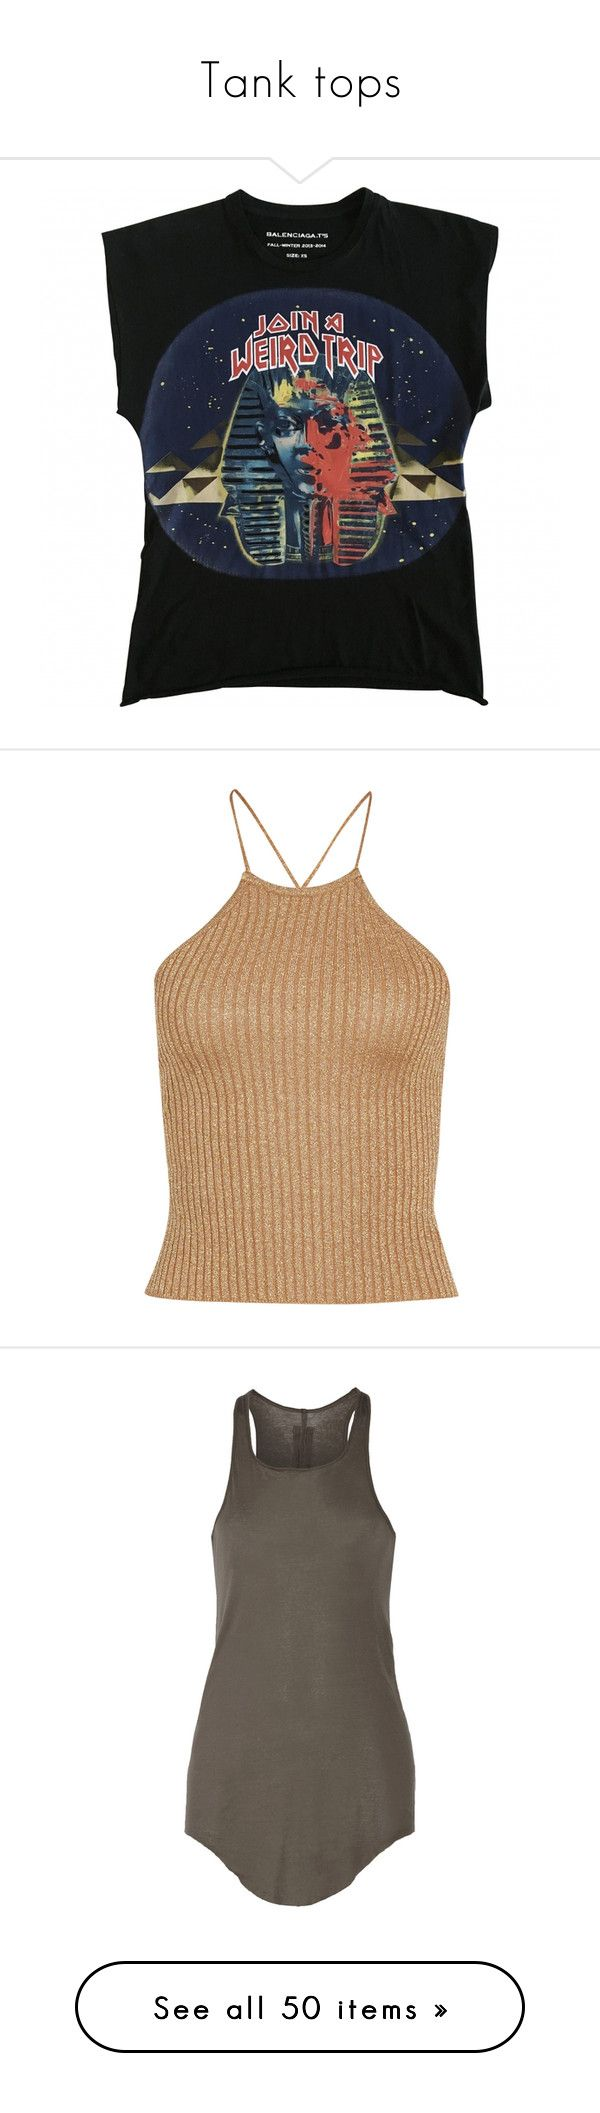 """""""Tank tops"""" by blvck-fashion ❤ liked on Polyvore featuring tops, t-shirts, shirts, tank tops, balenciaga t shirt, blue shirt, balenciaga tee, blue t shirt, cotton shirts and sparkly tank top"""